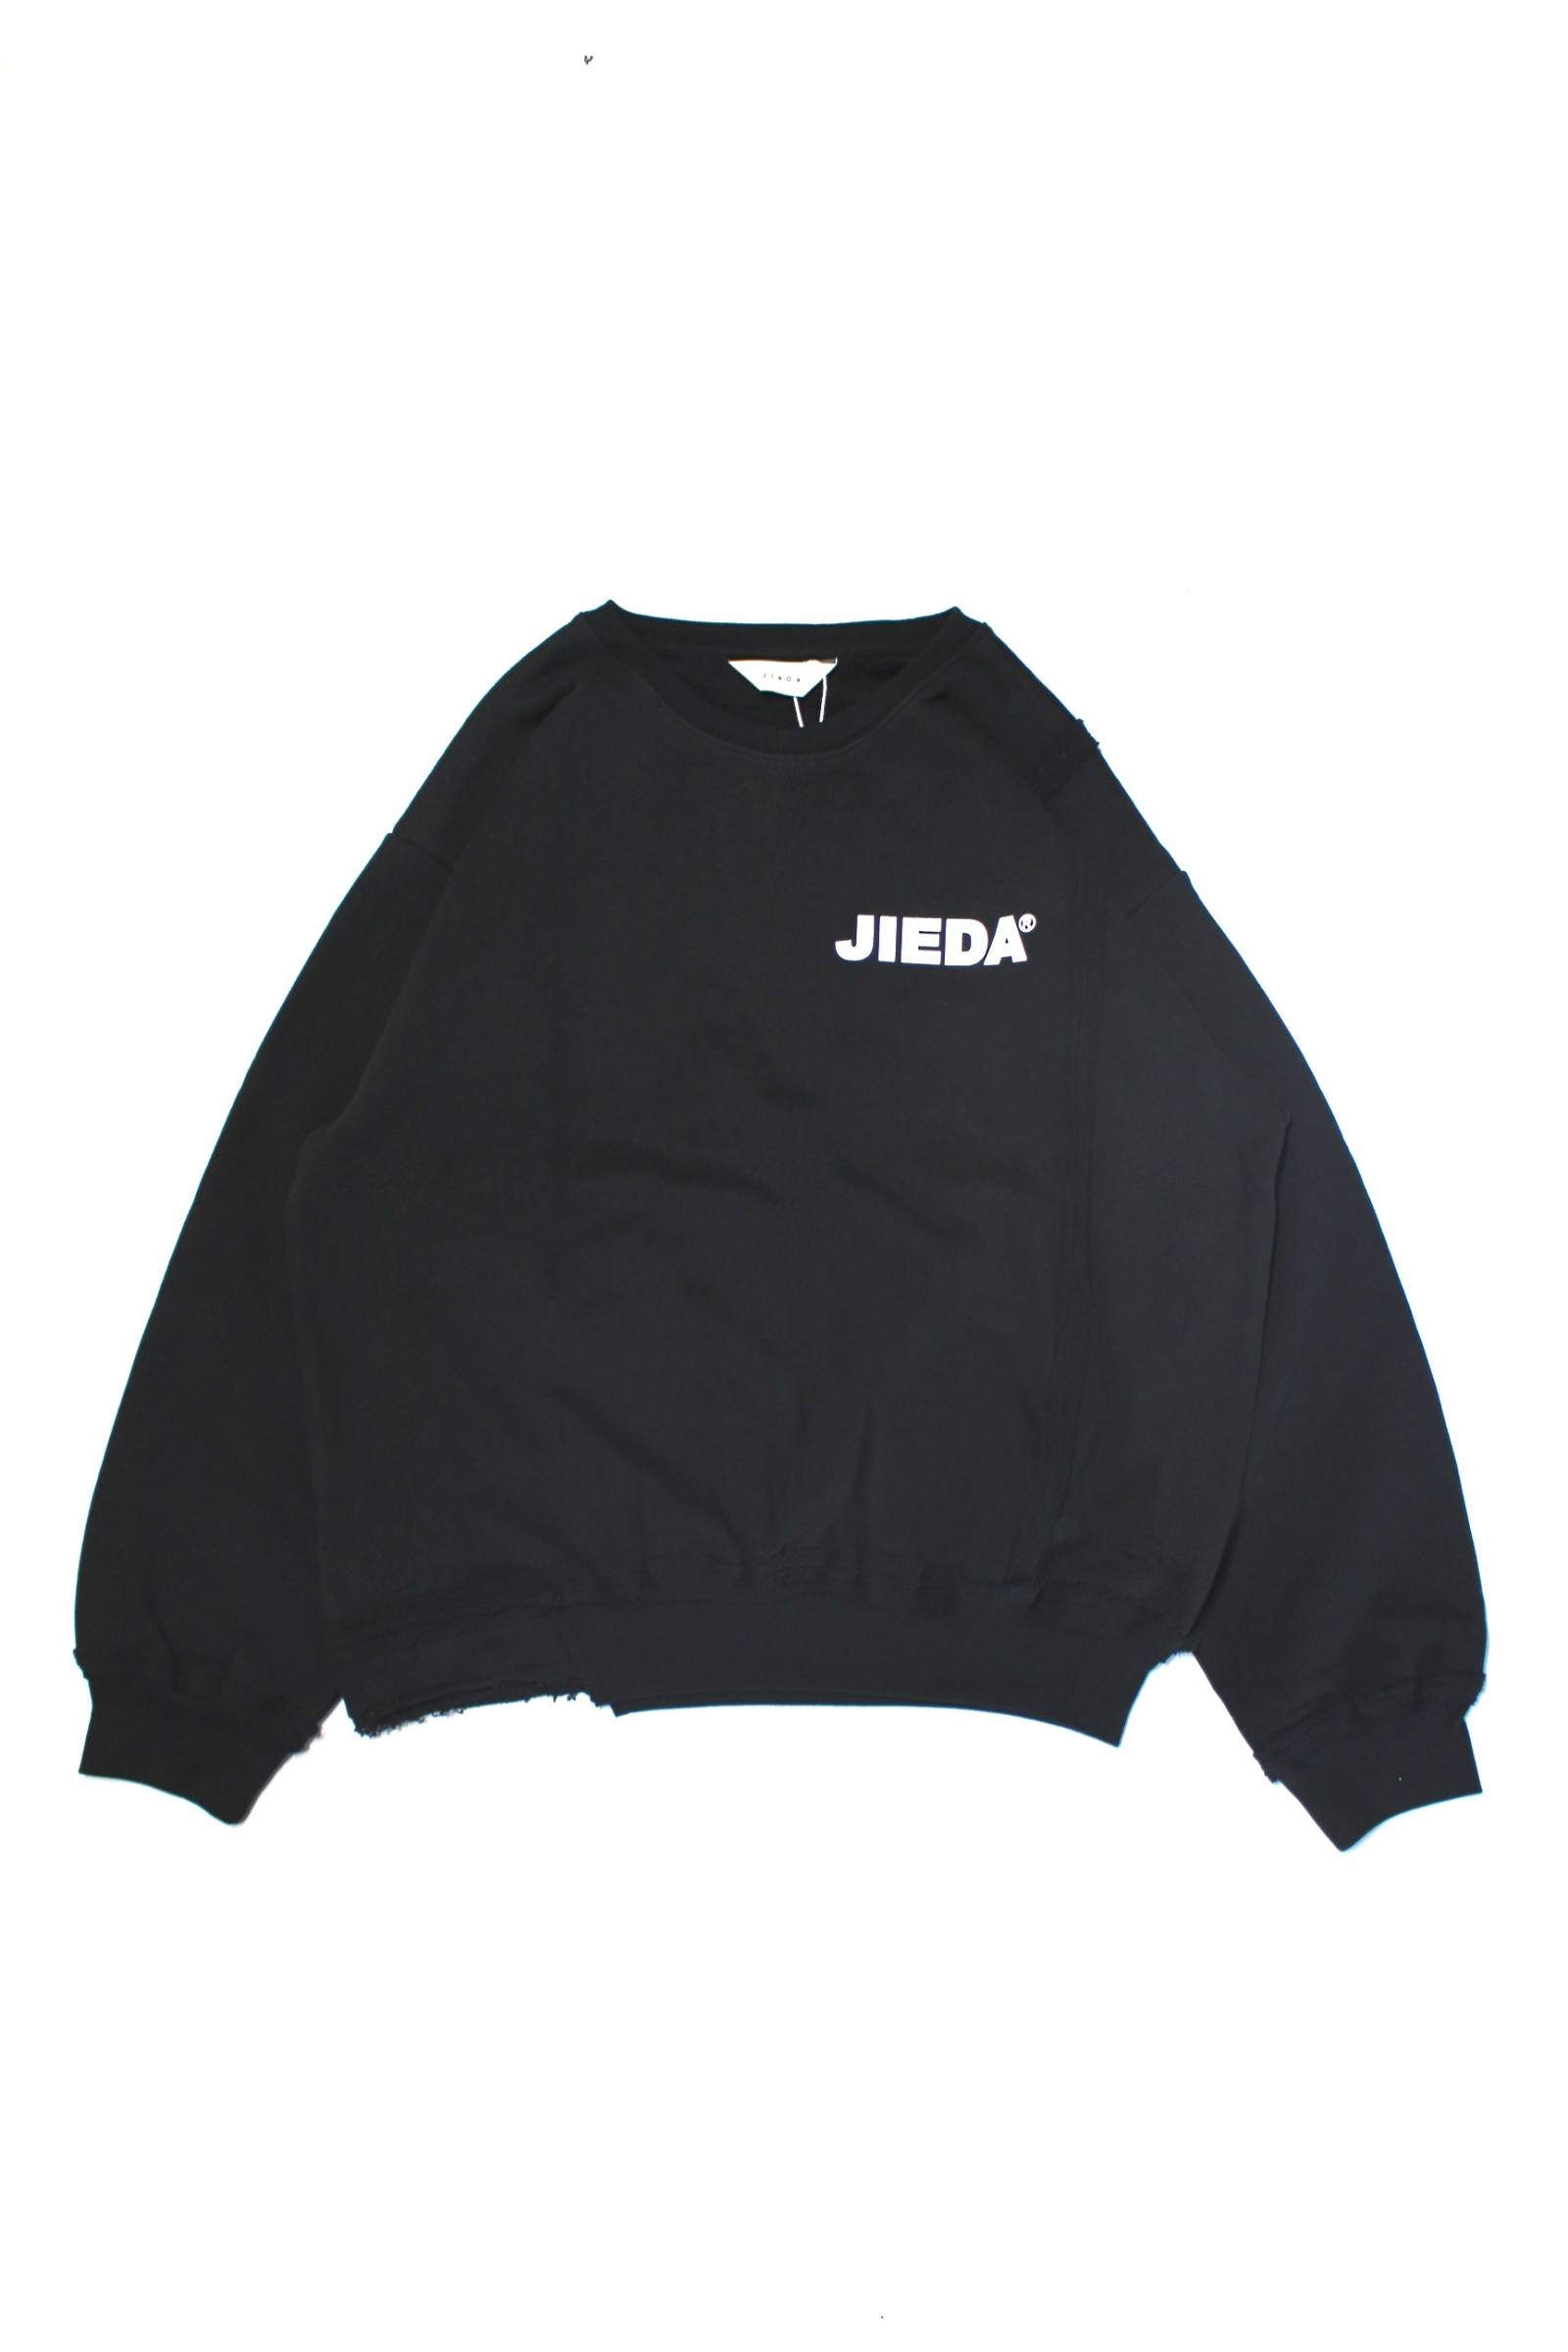 JieDa LOGO SWITCHING SWEAT SHIRT/スウィッチスウェット